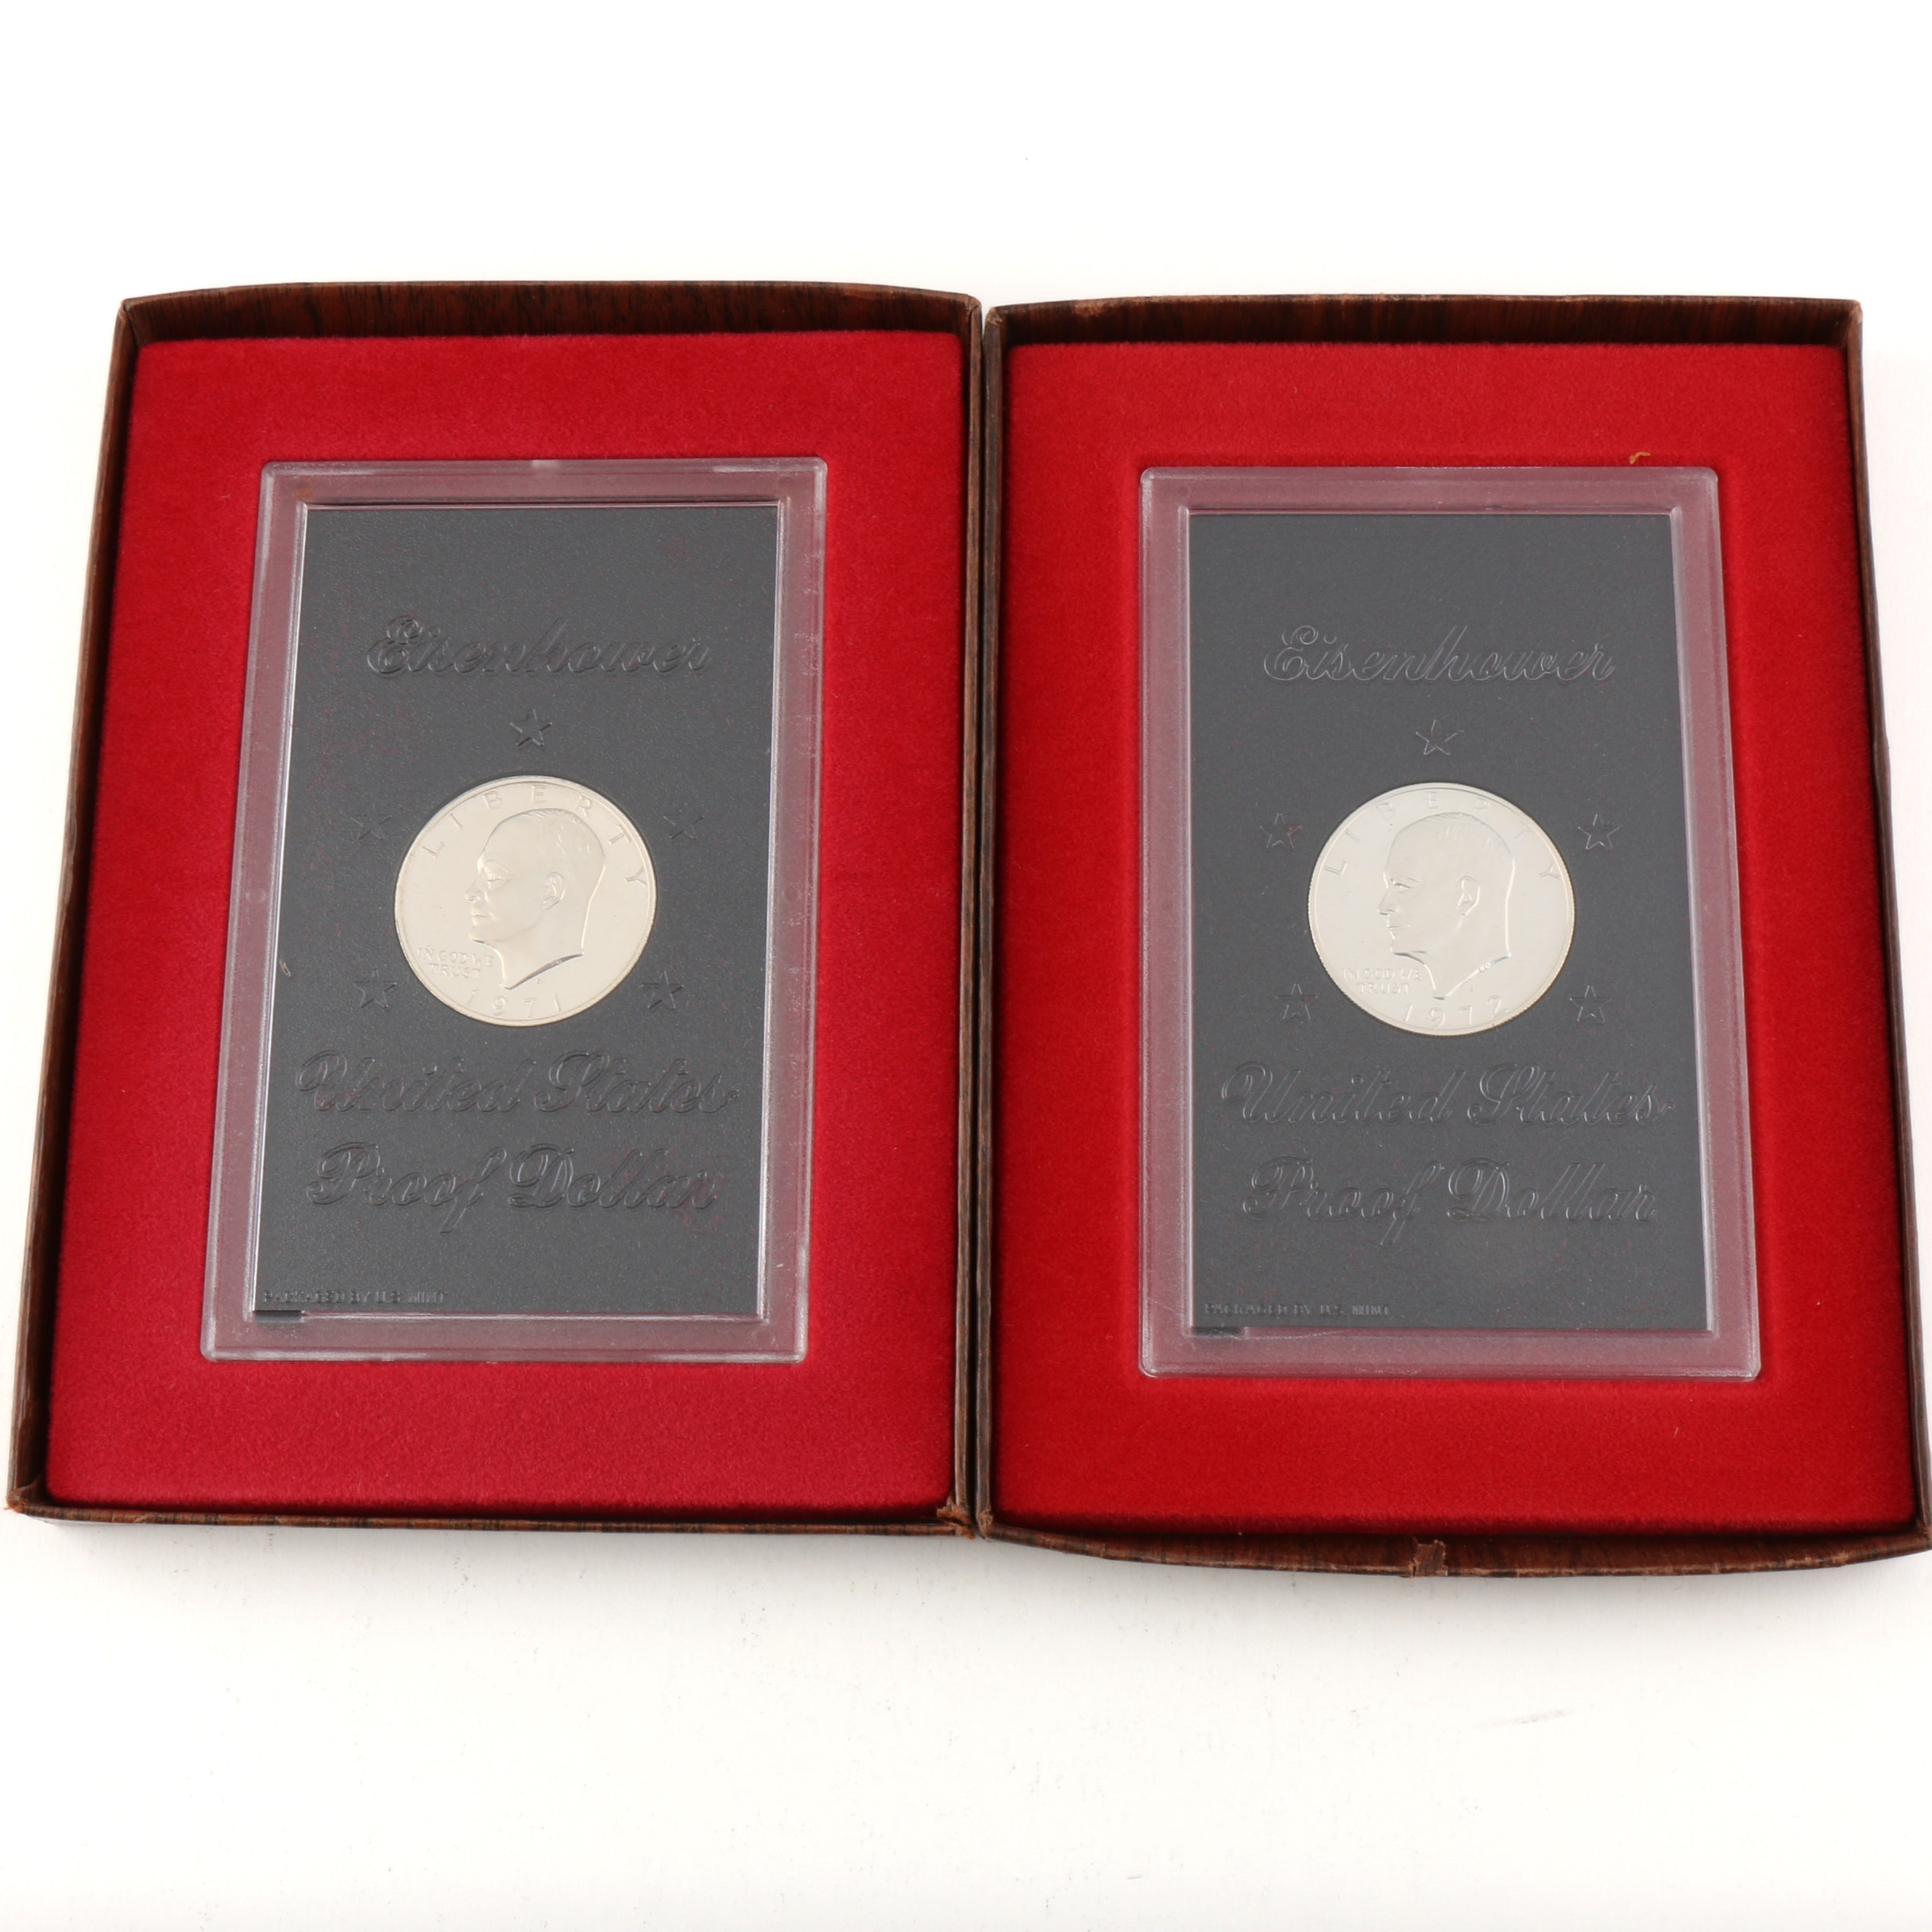 Group of Two Eisenhower Silver Dollar Proof Coins: 1971-S and 1972-S